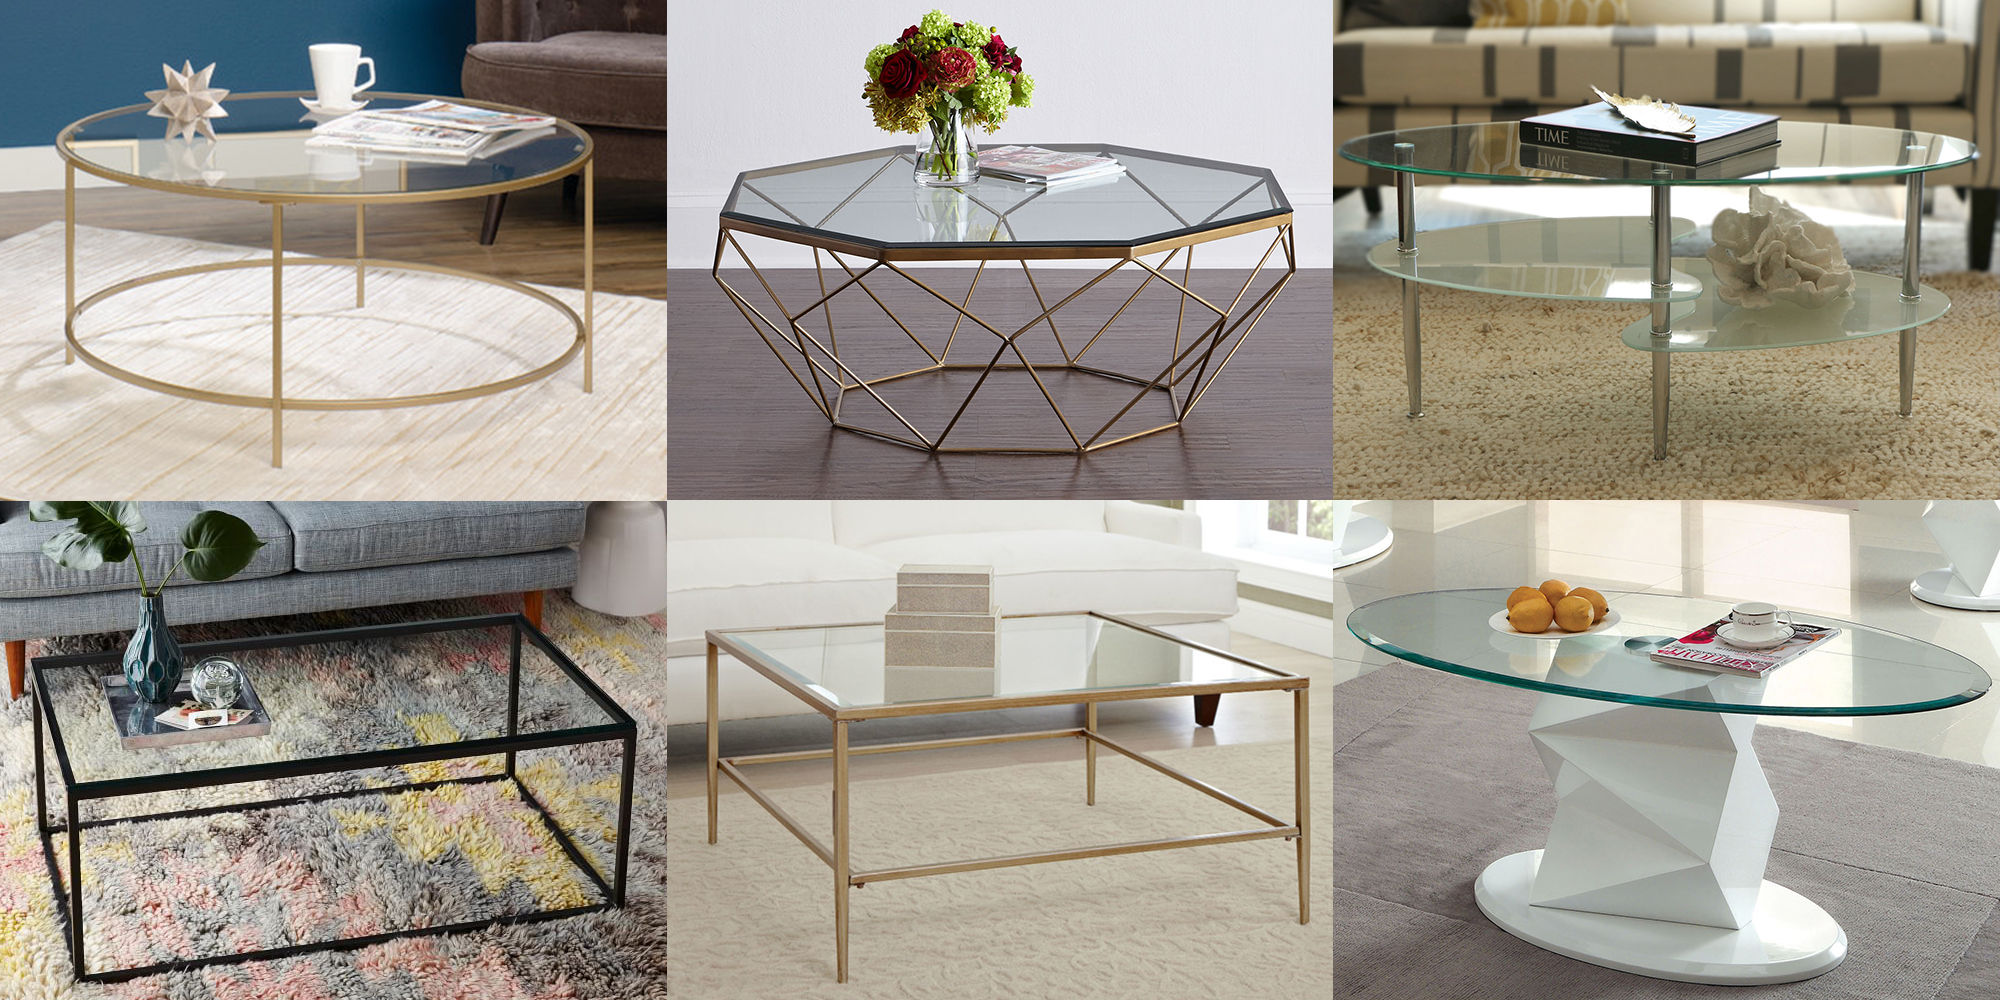 Coffee table designs 2018 — DecorationY